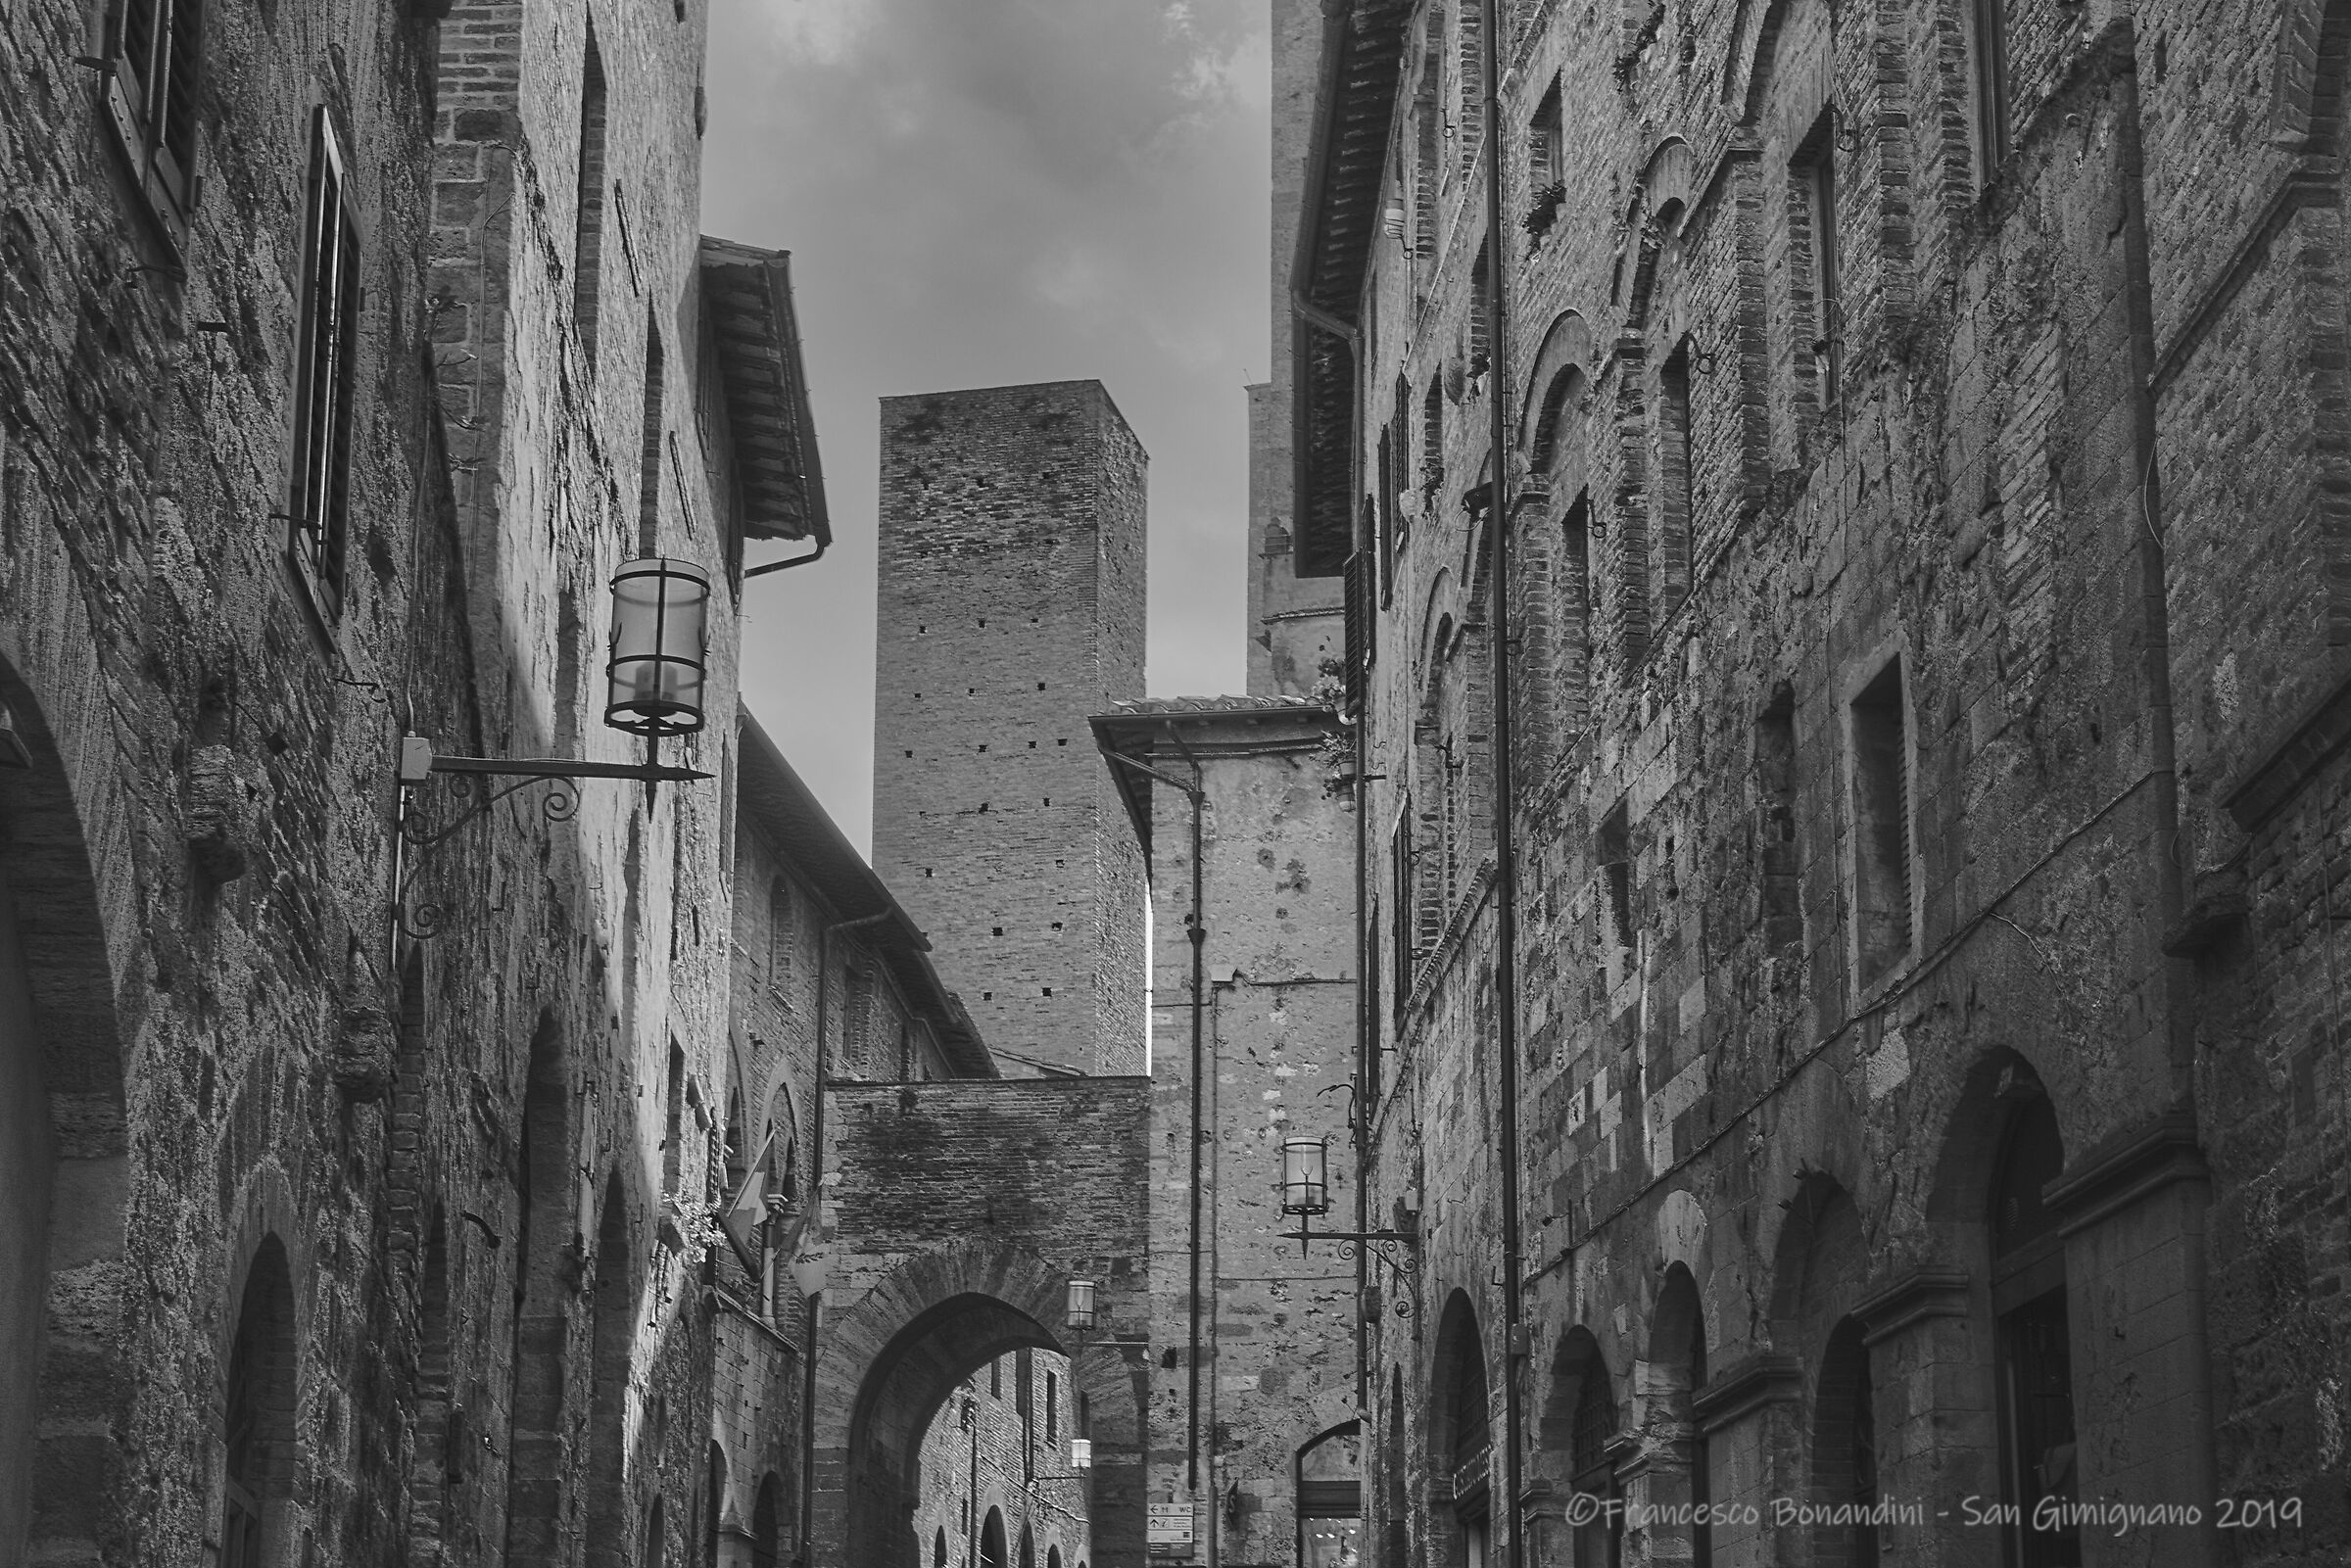 On the streets of San Gimignano...